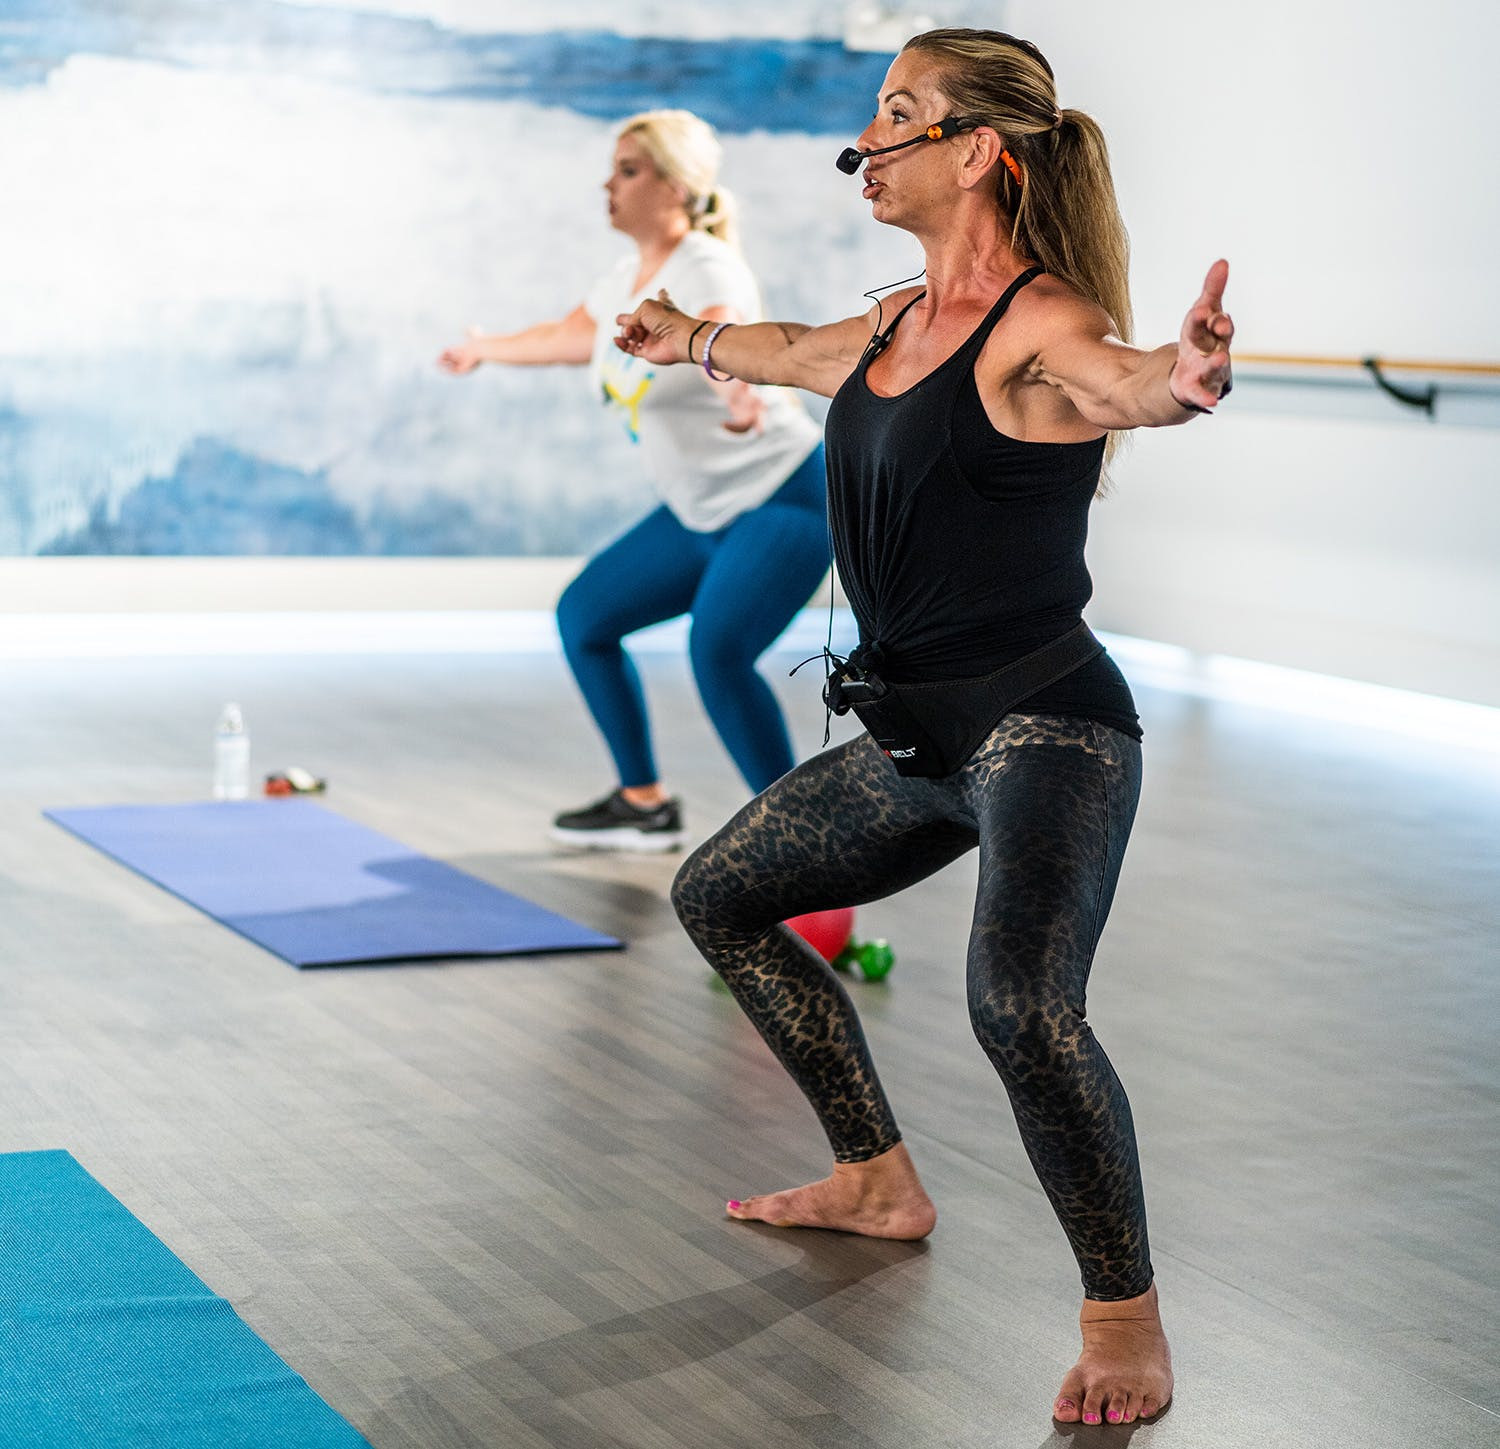 Instructor mid pose leading barre class at gym studio